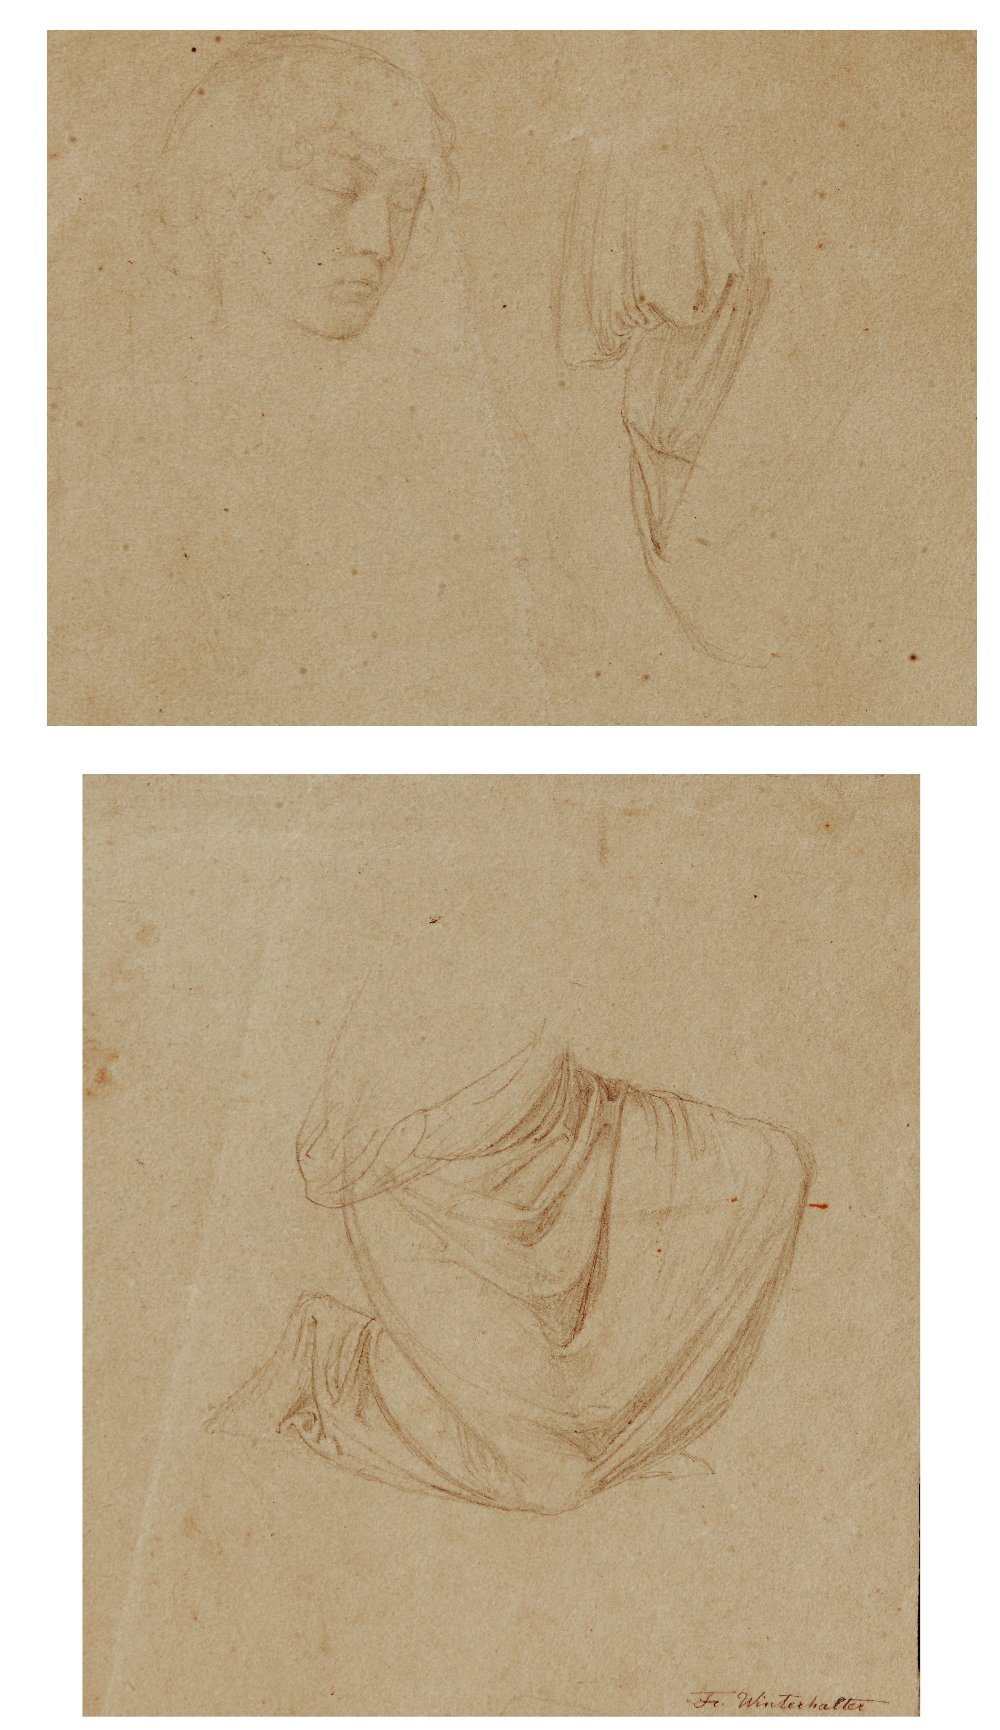 Lot 452 - ATTRIBUTED TO FRANZ XAVIER WINTERHALTER (1805-1873) Drapery study, signed, pencil drawing, 15 x 13.